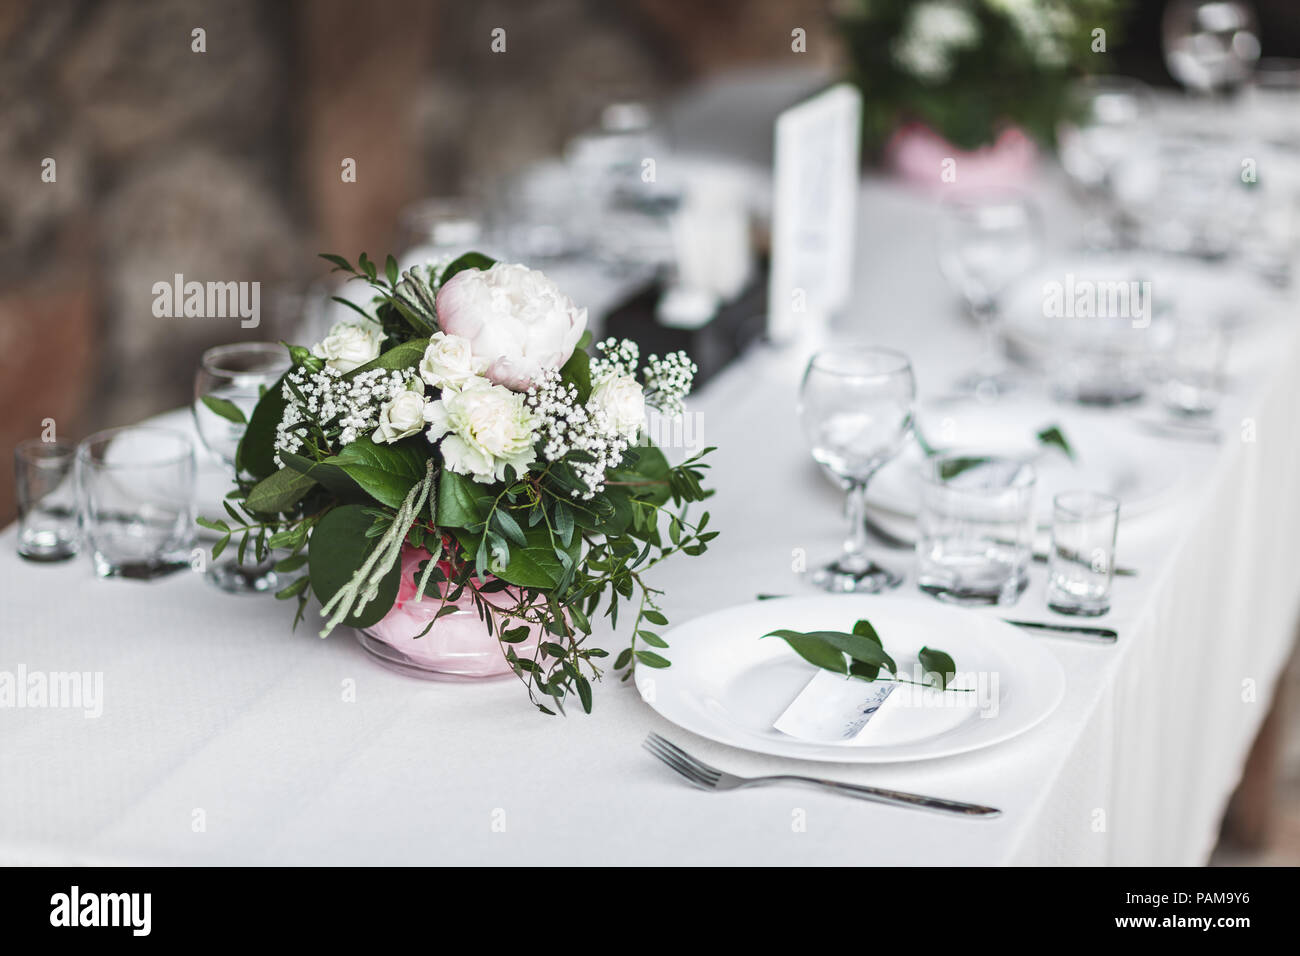 White Wedding Table Decorated With Green Flowers Arrangement Name